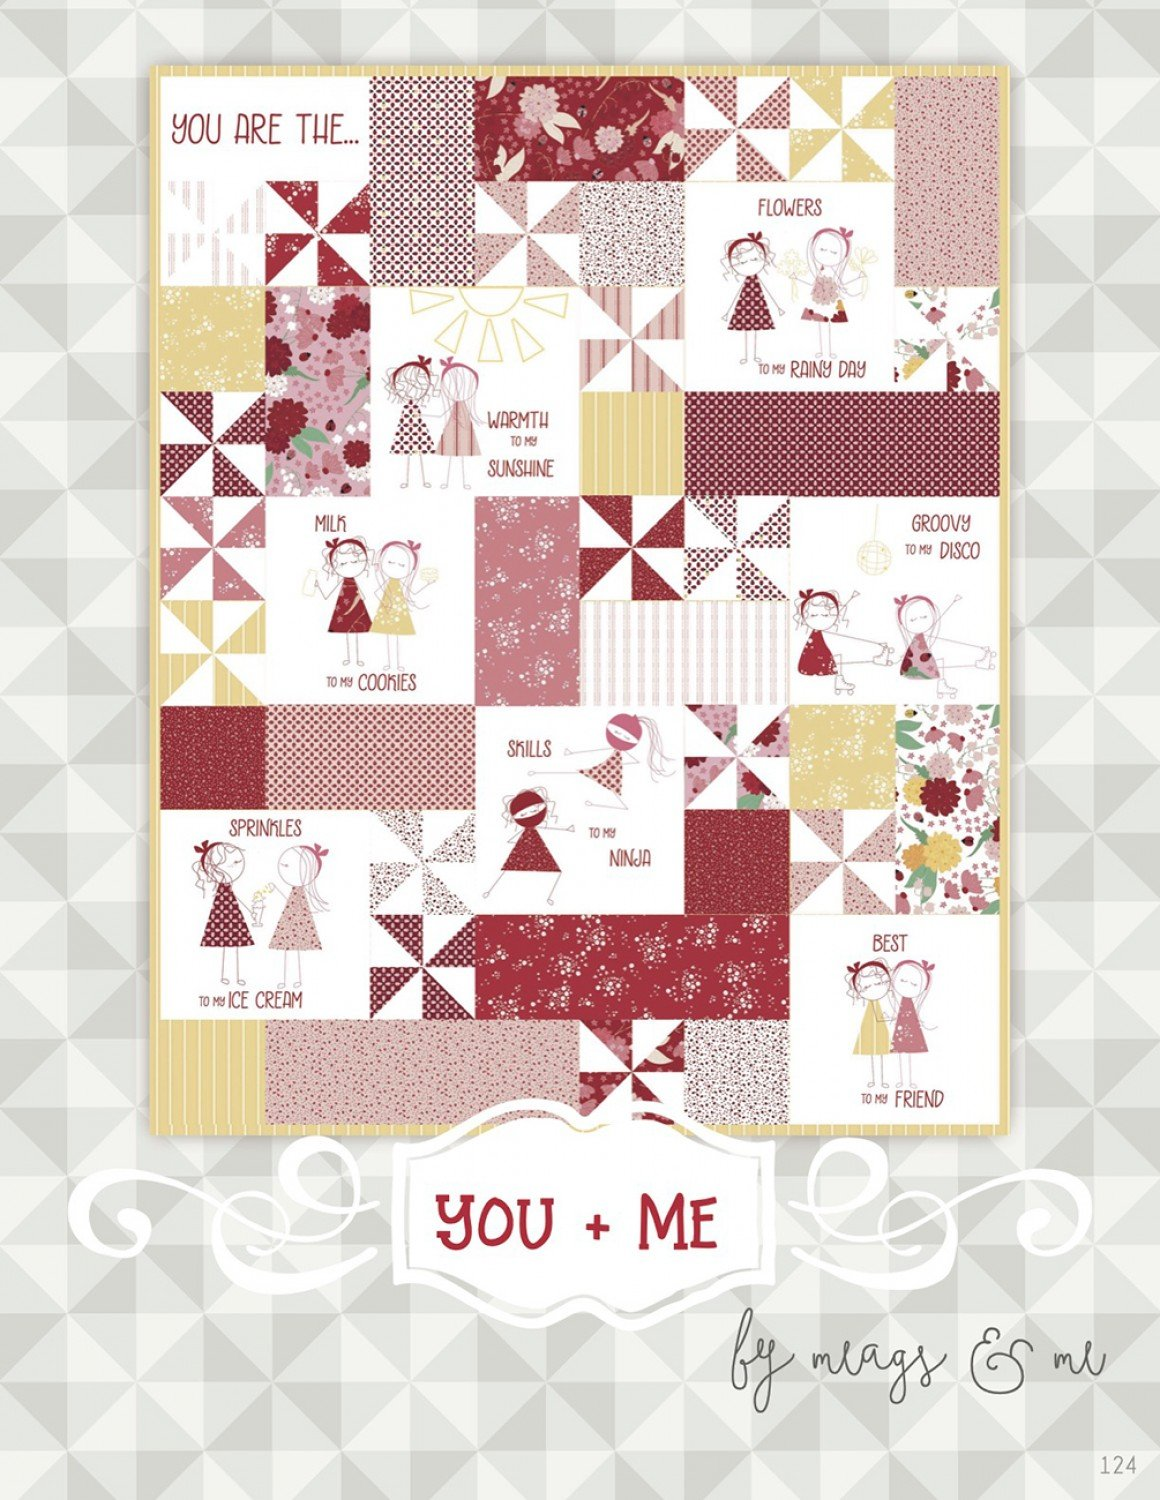 You + Me Hand Embroidery ~ RELEASE DATE AUG 1/21 ~